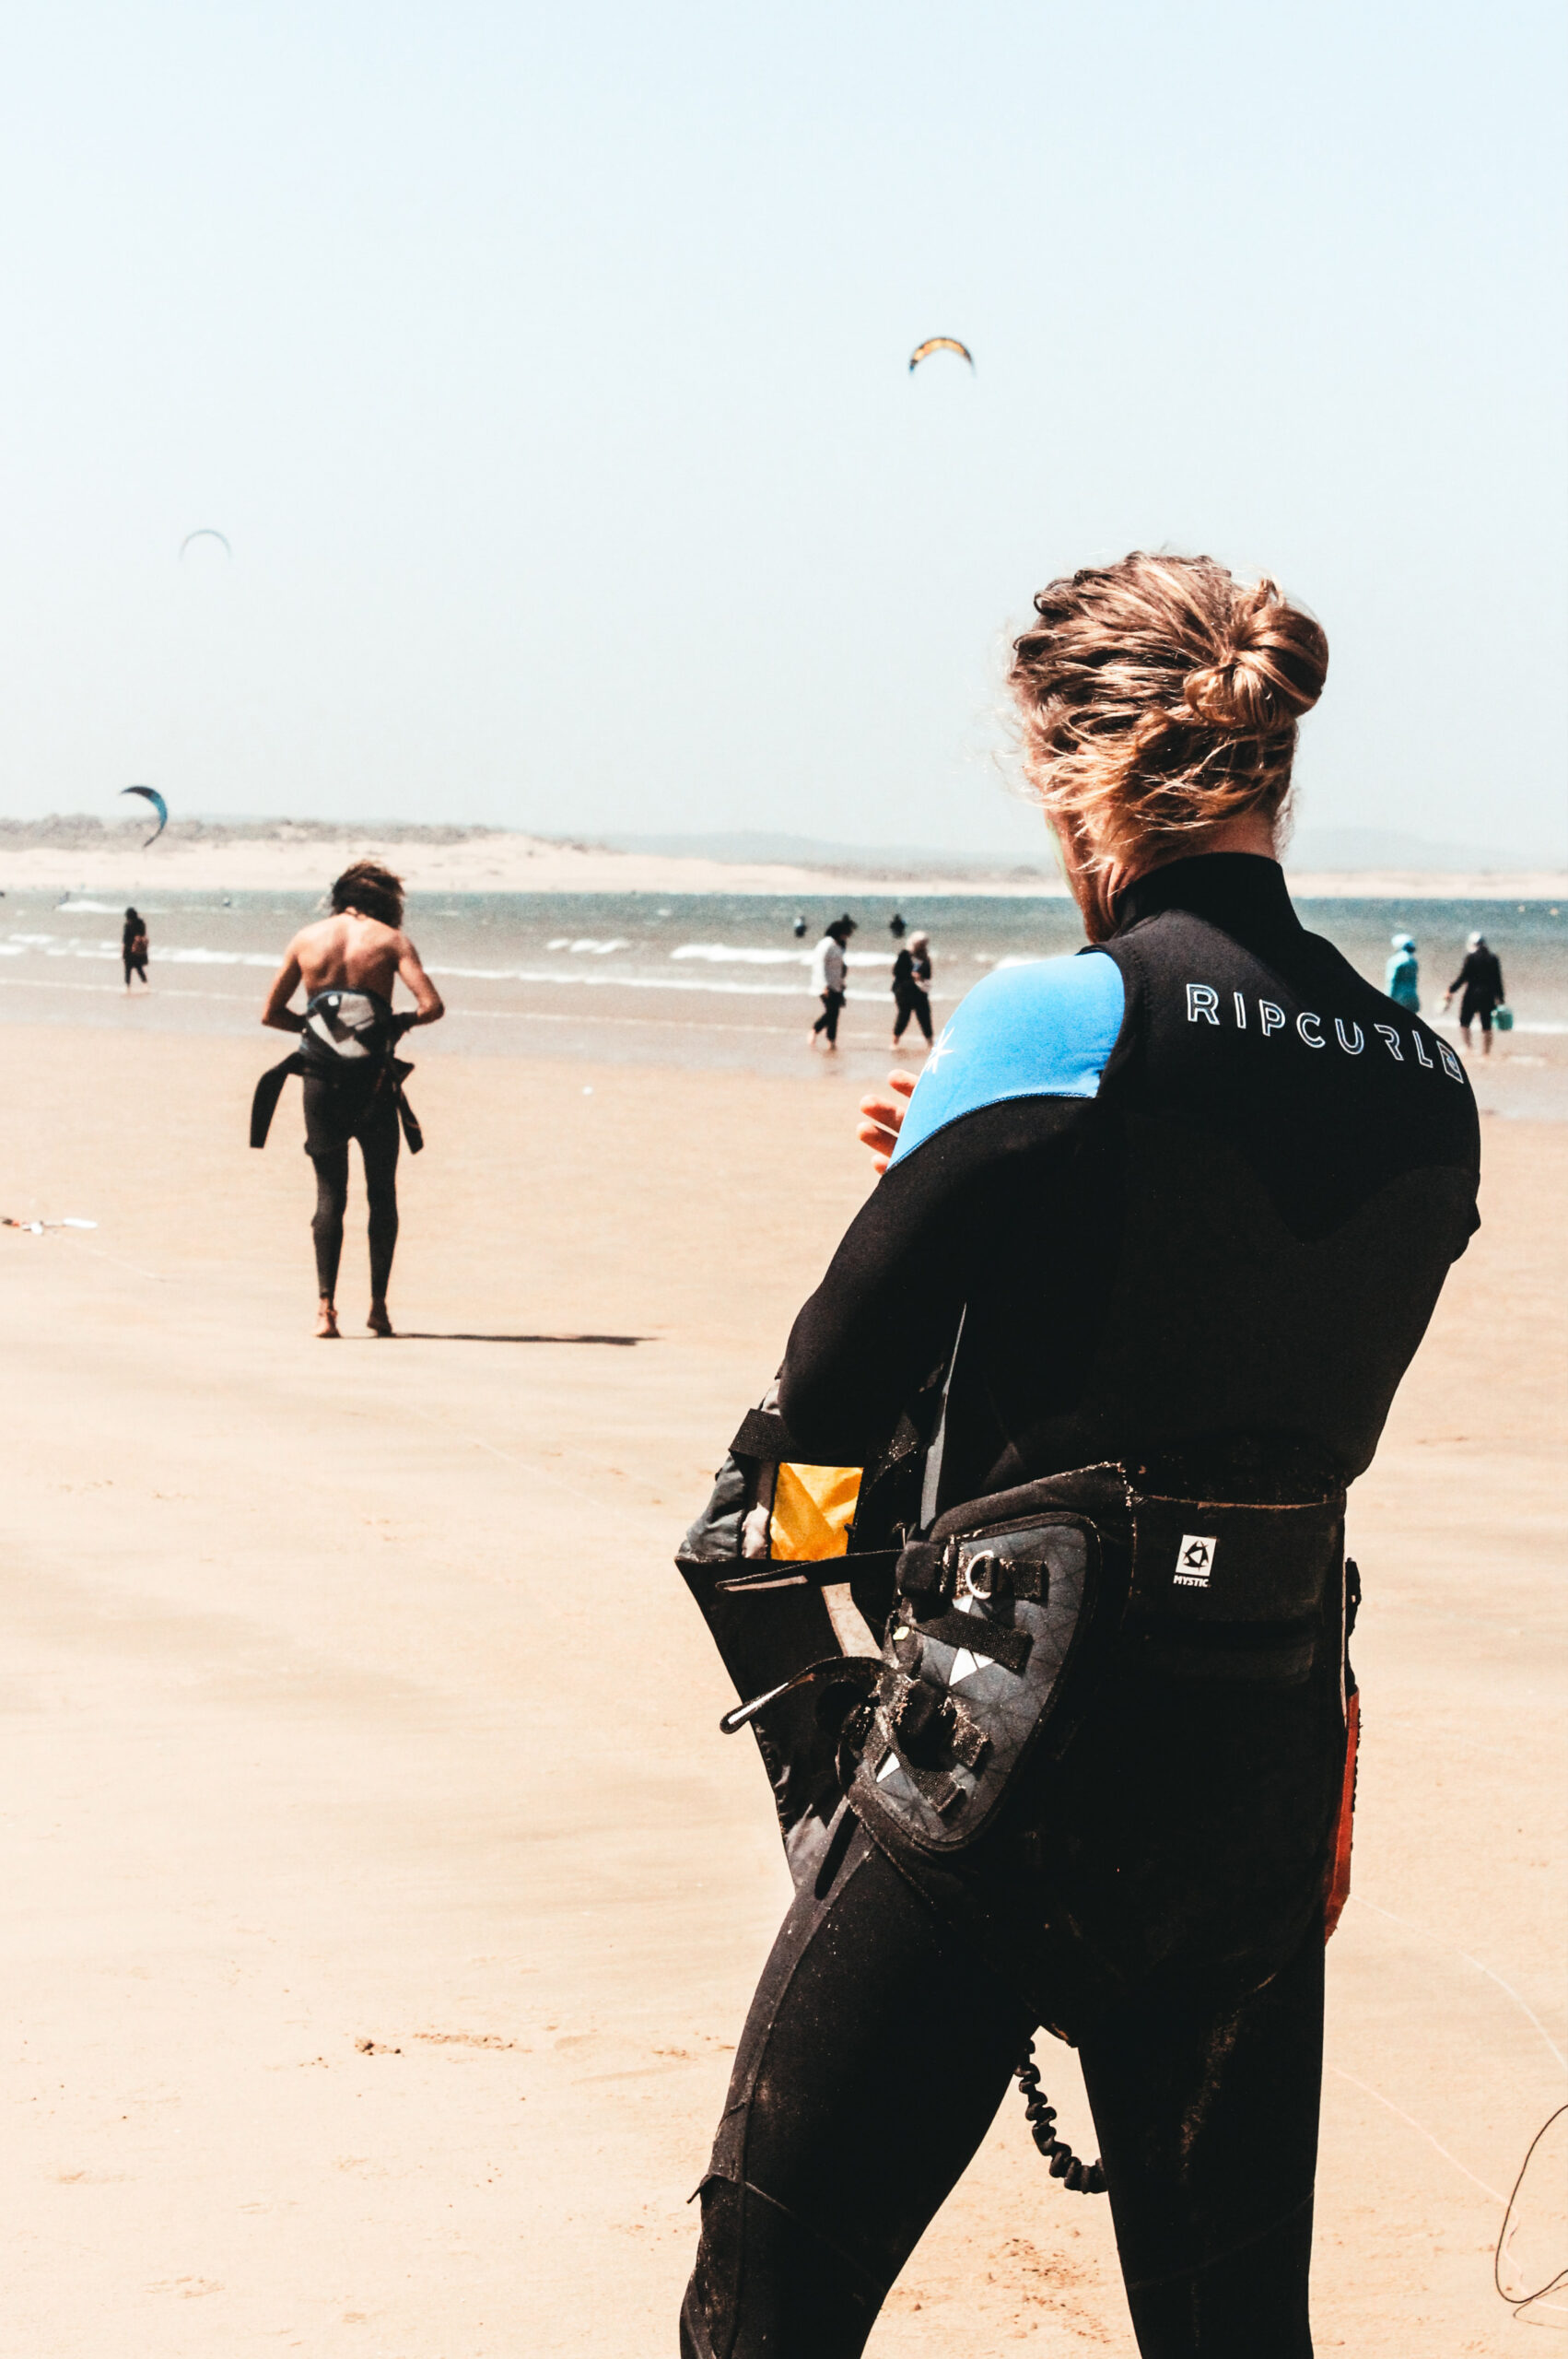 Man on a beach with the kitesurfing harness on.